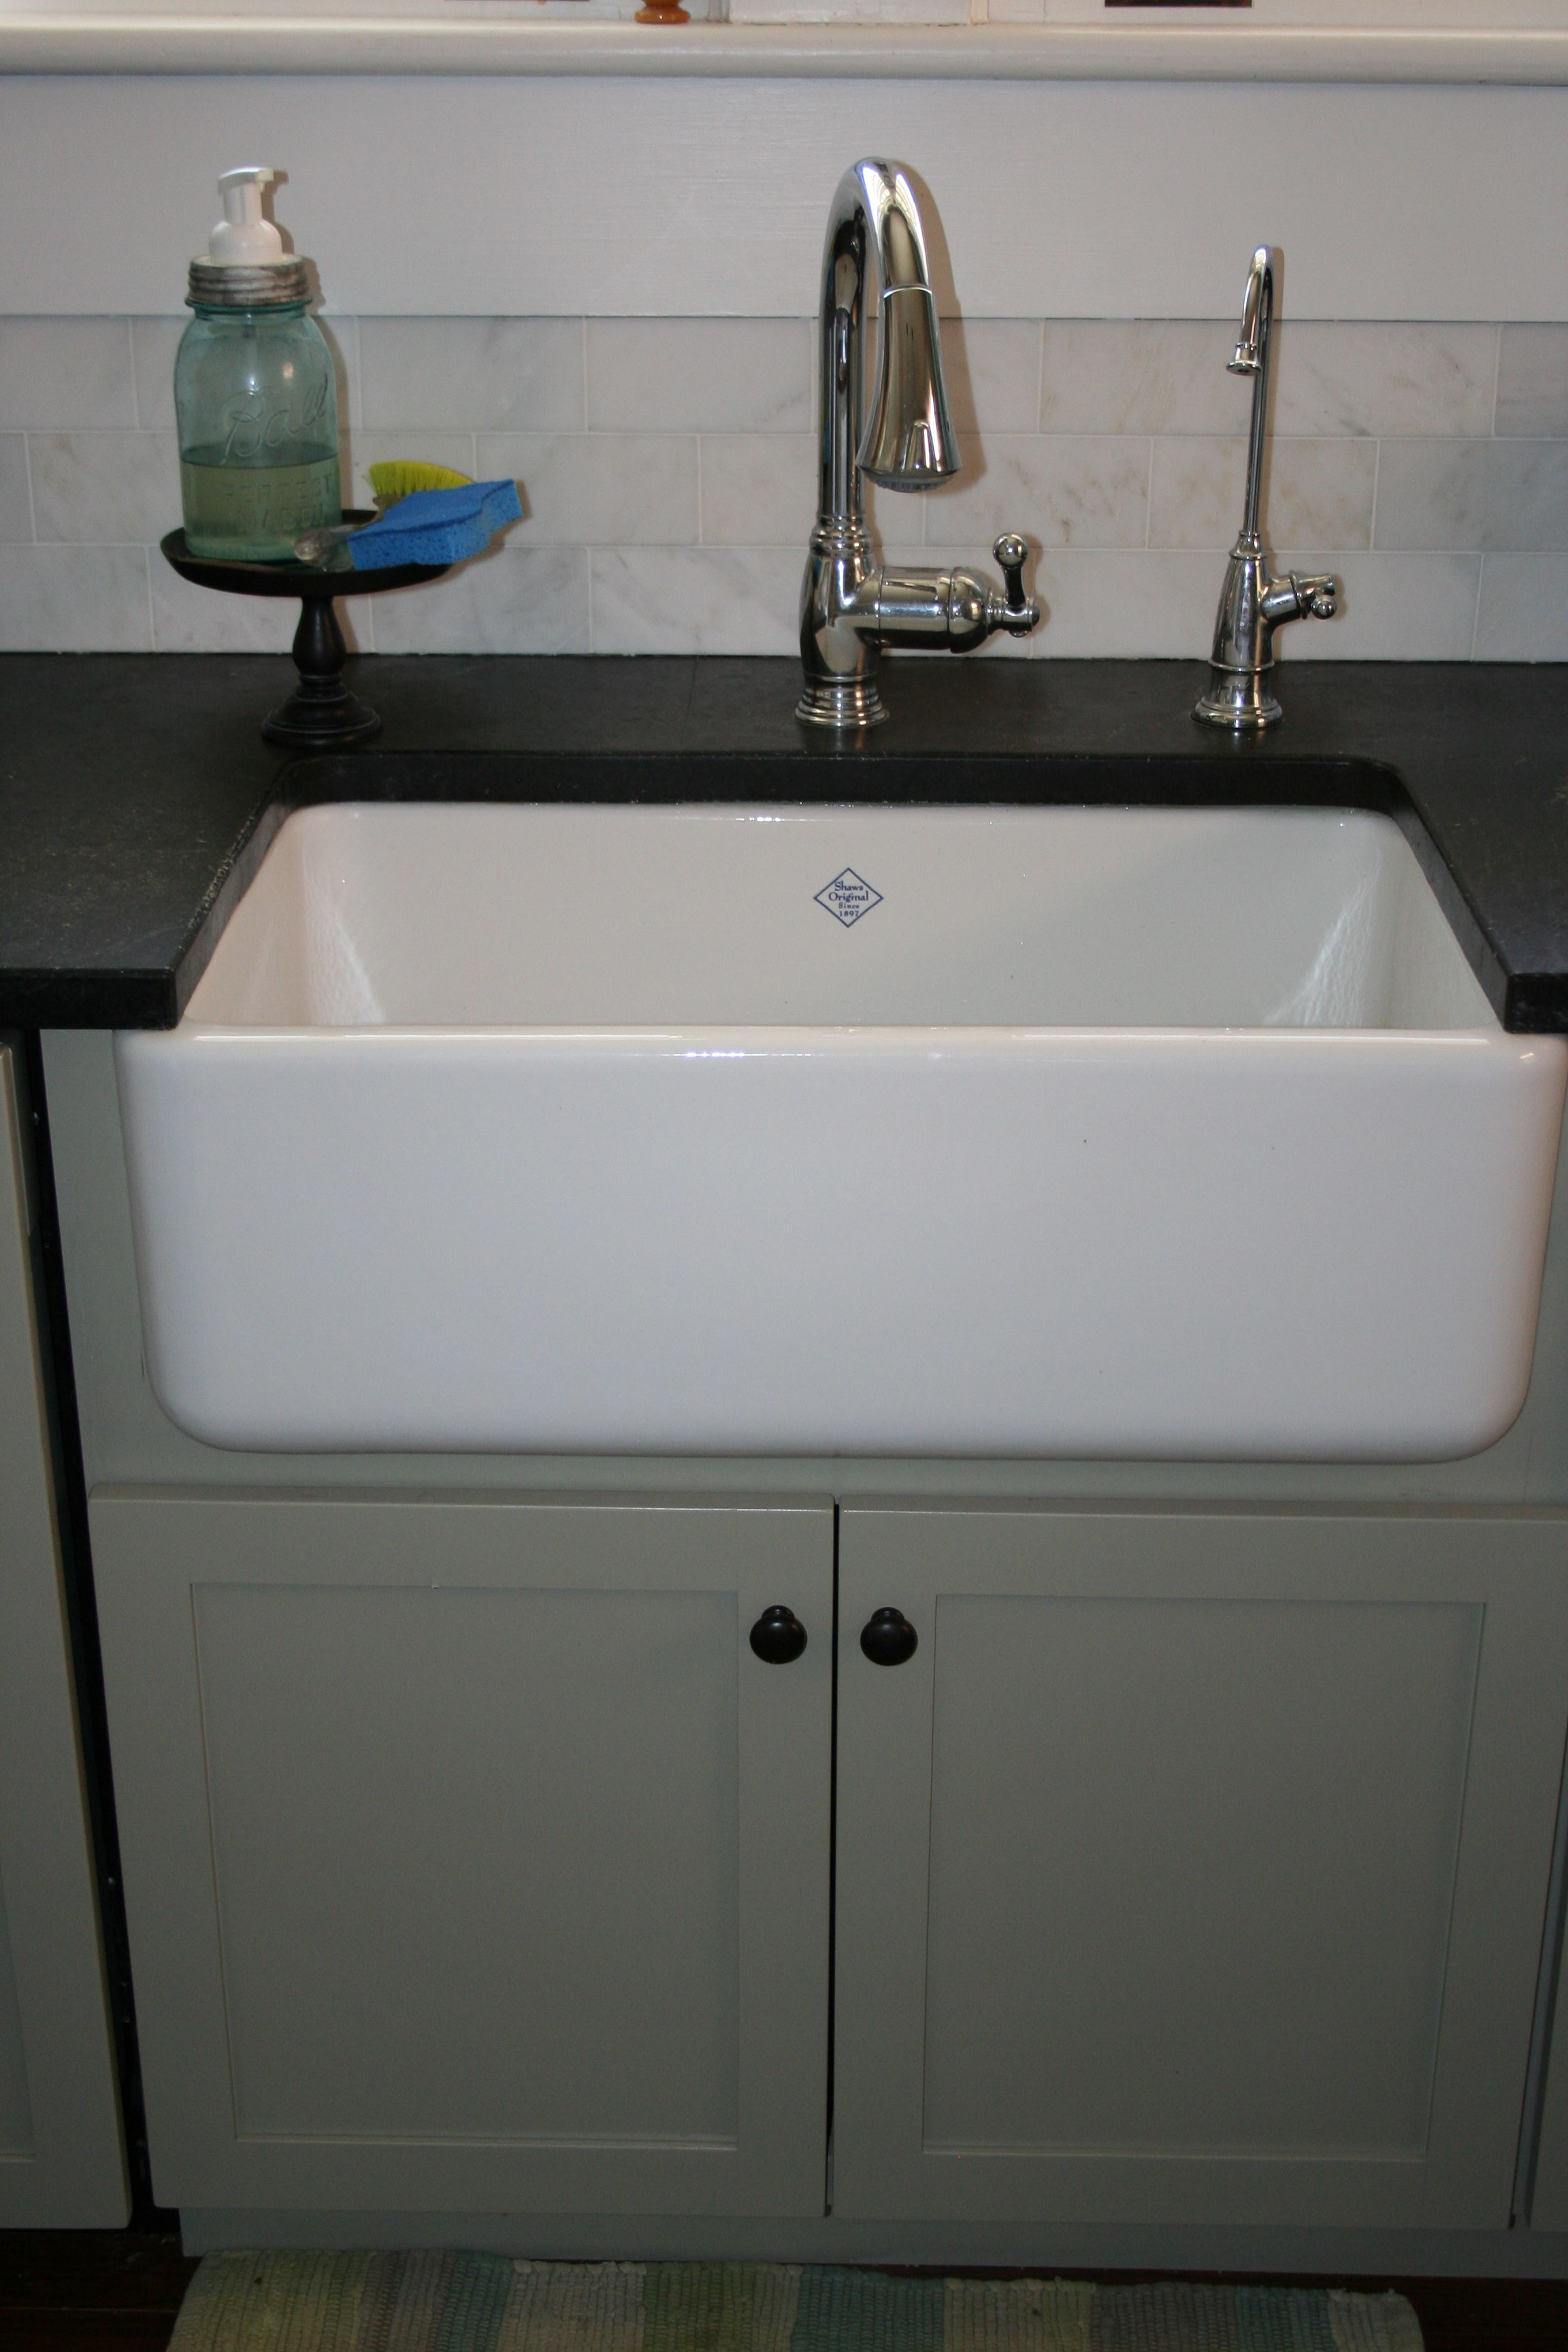 Rohls Shaw Apron Front Farmhouse Sink Grohe Bridgeford Faucet